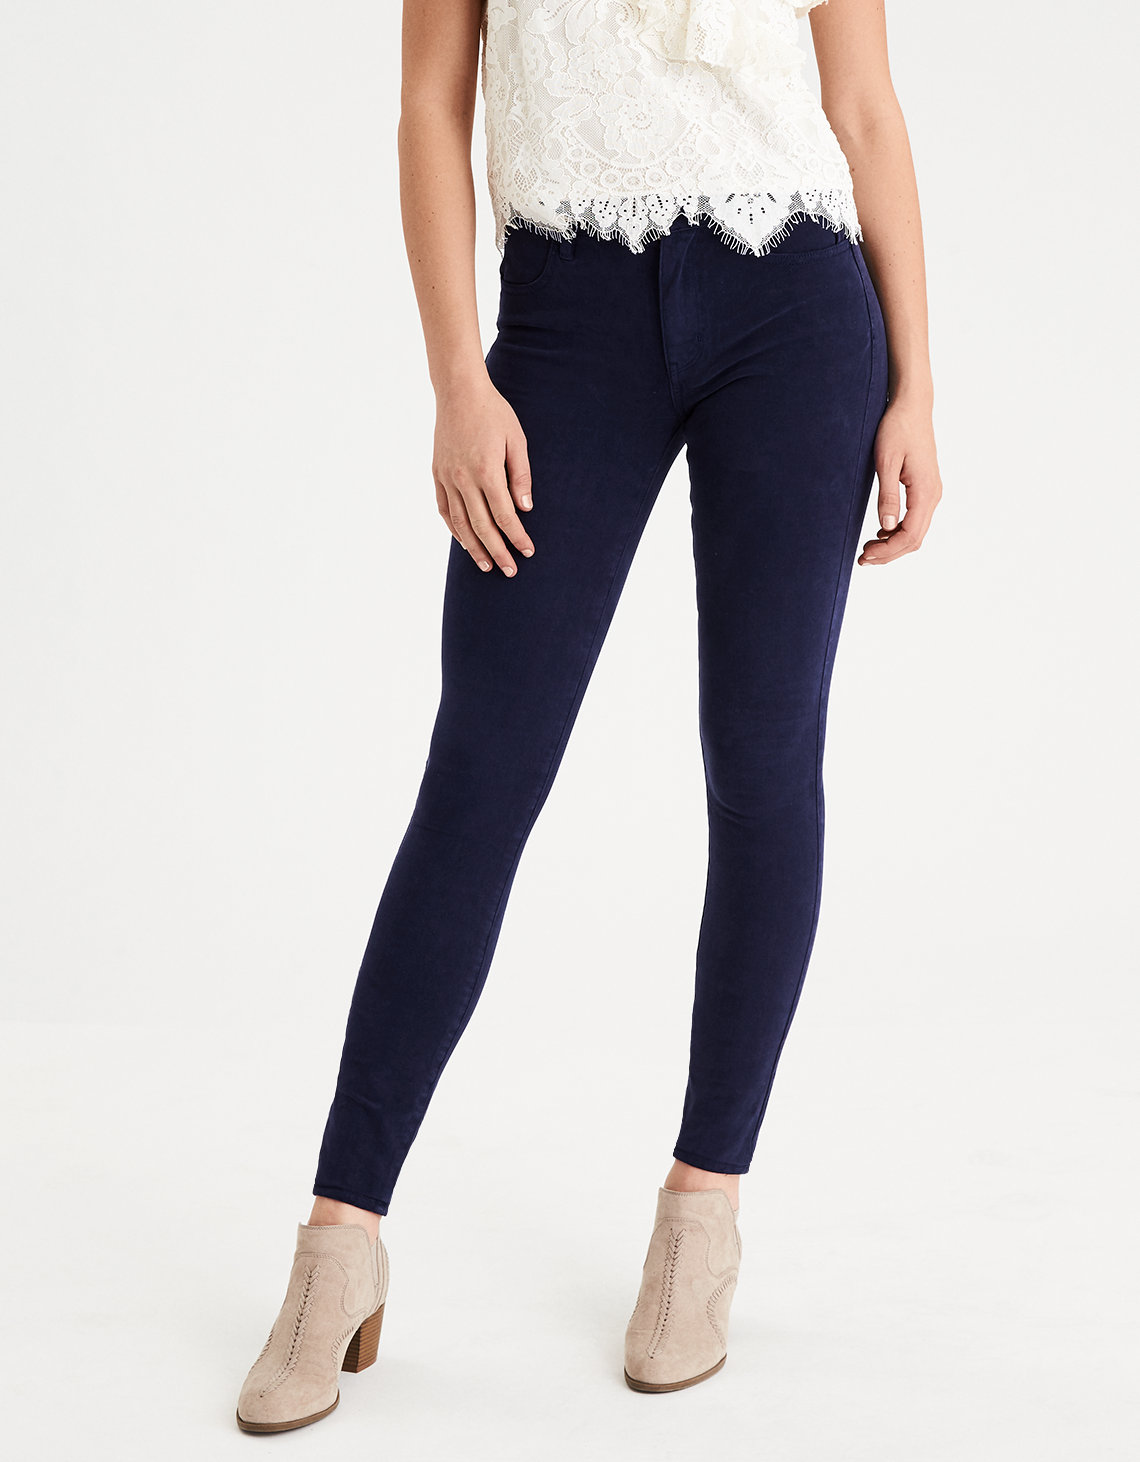 High Waisted Jegging Rich Navy American Eagle Outfitters Tendencies Chinos Short 28 Product Image